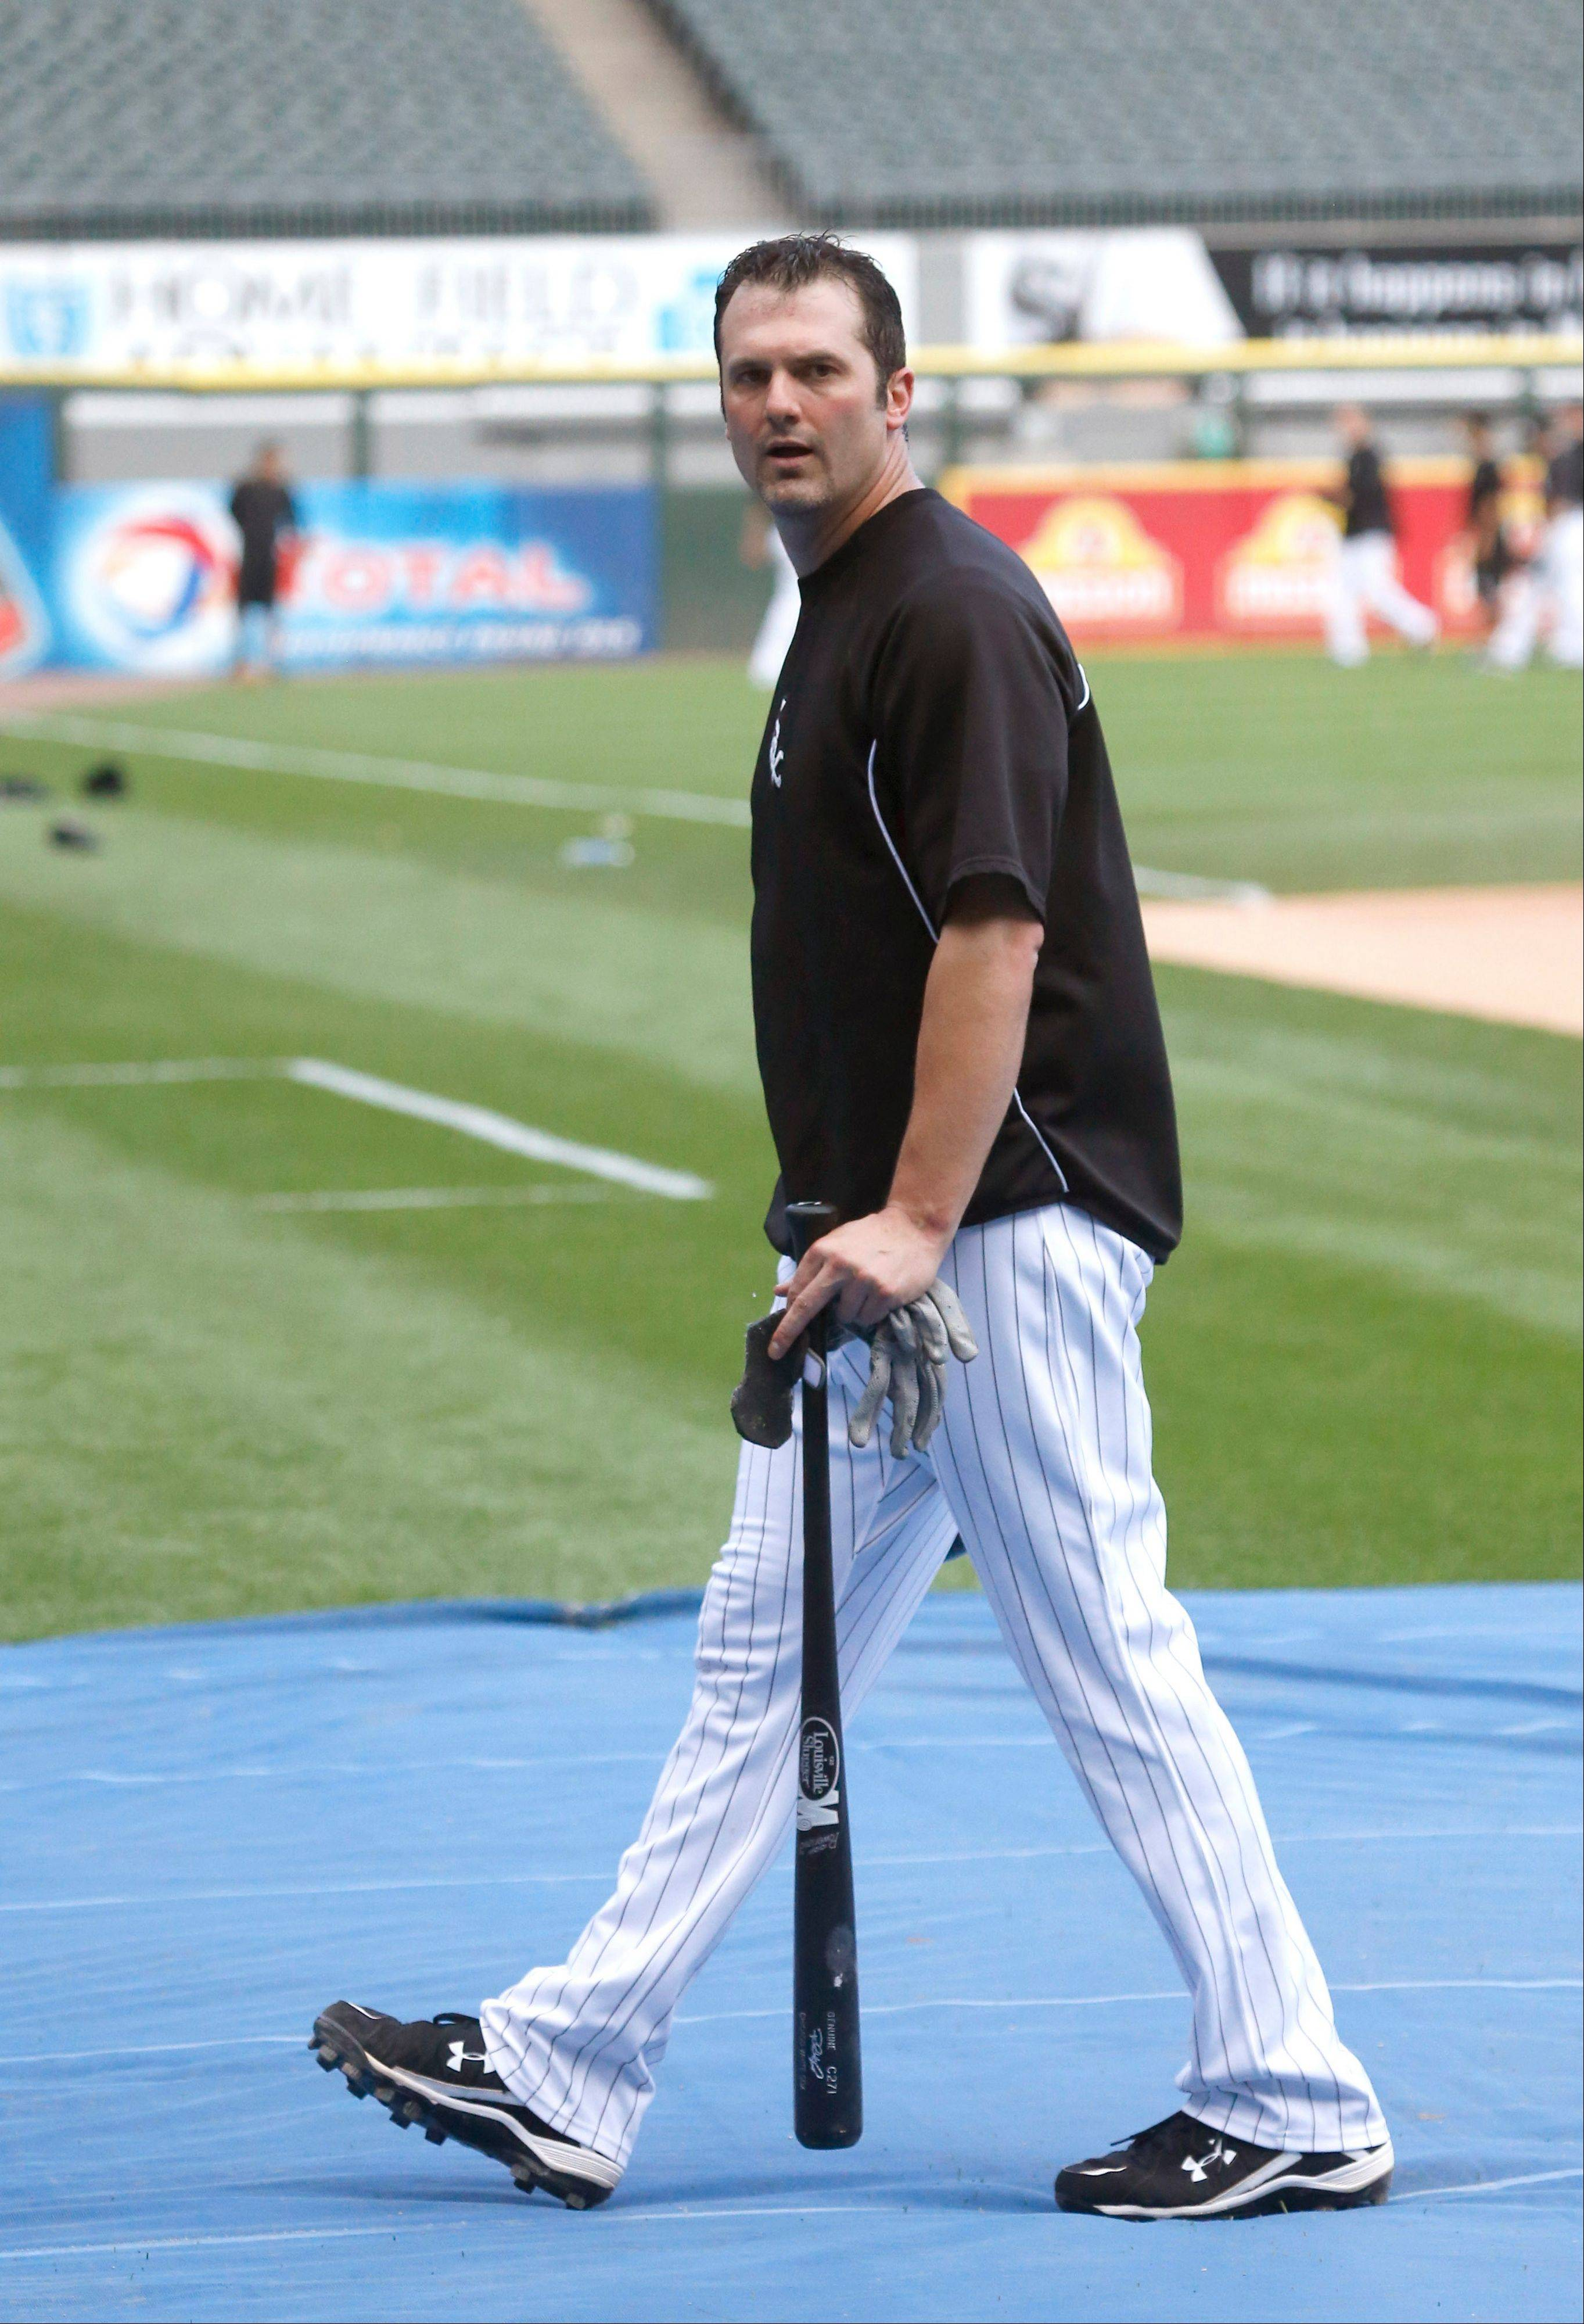 Konerko goes 0-for-3 in return to White Sox lineup